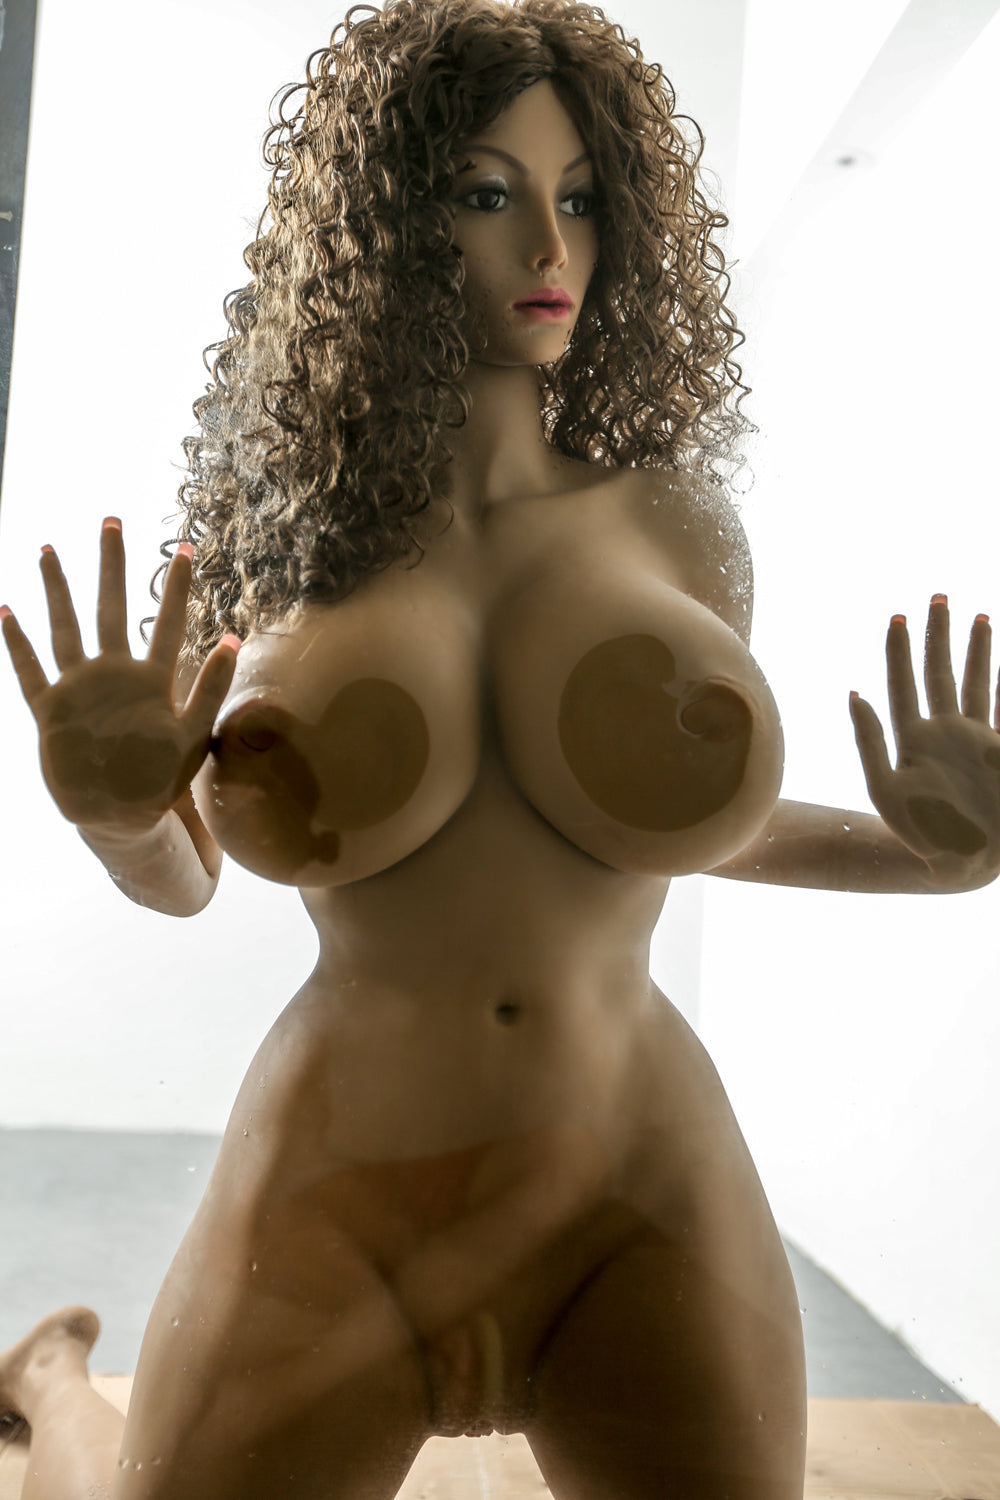 big breast sex doll